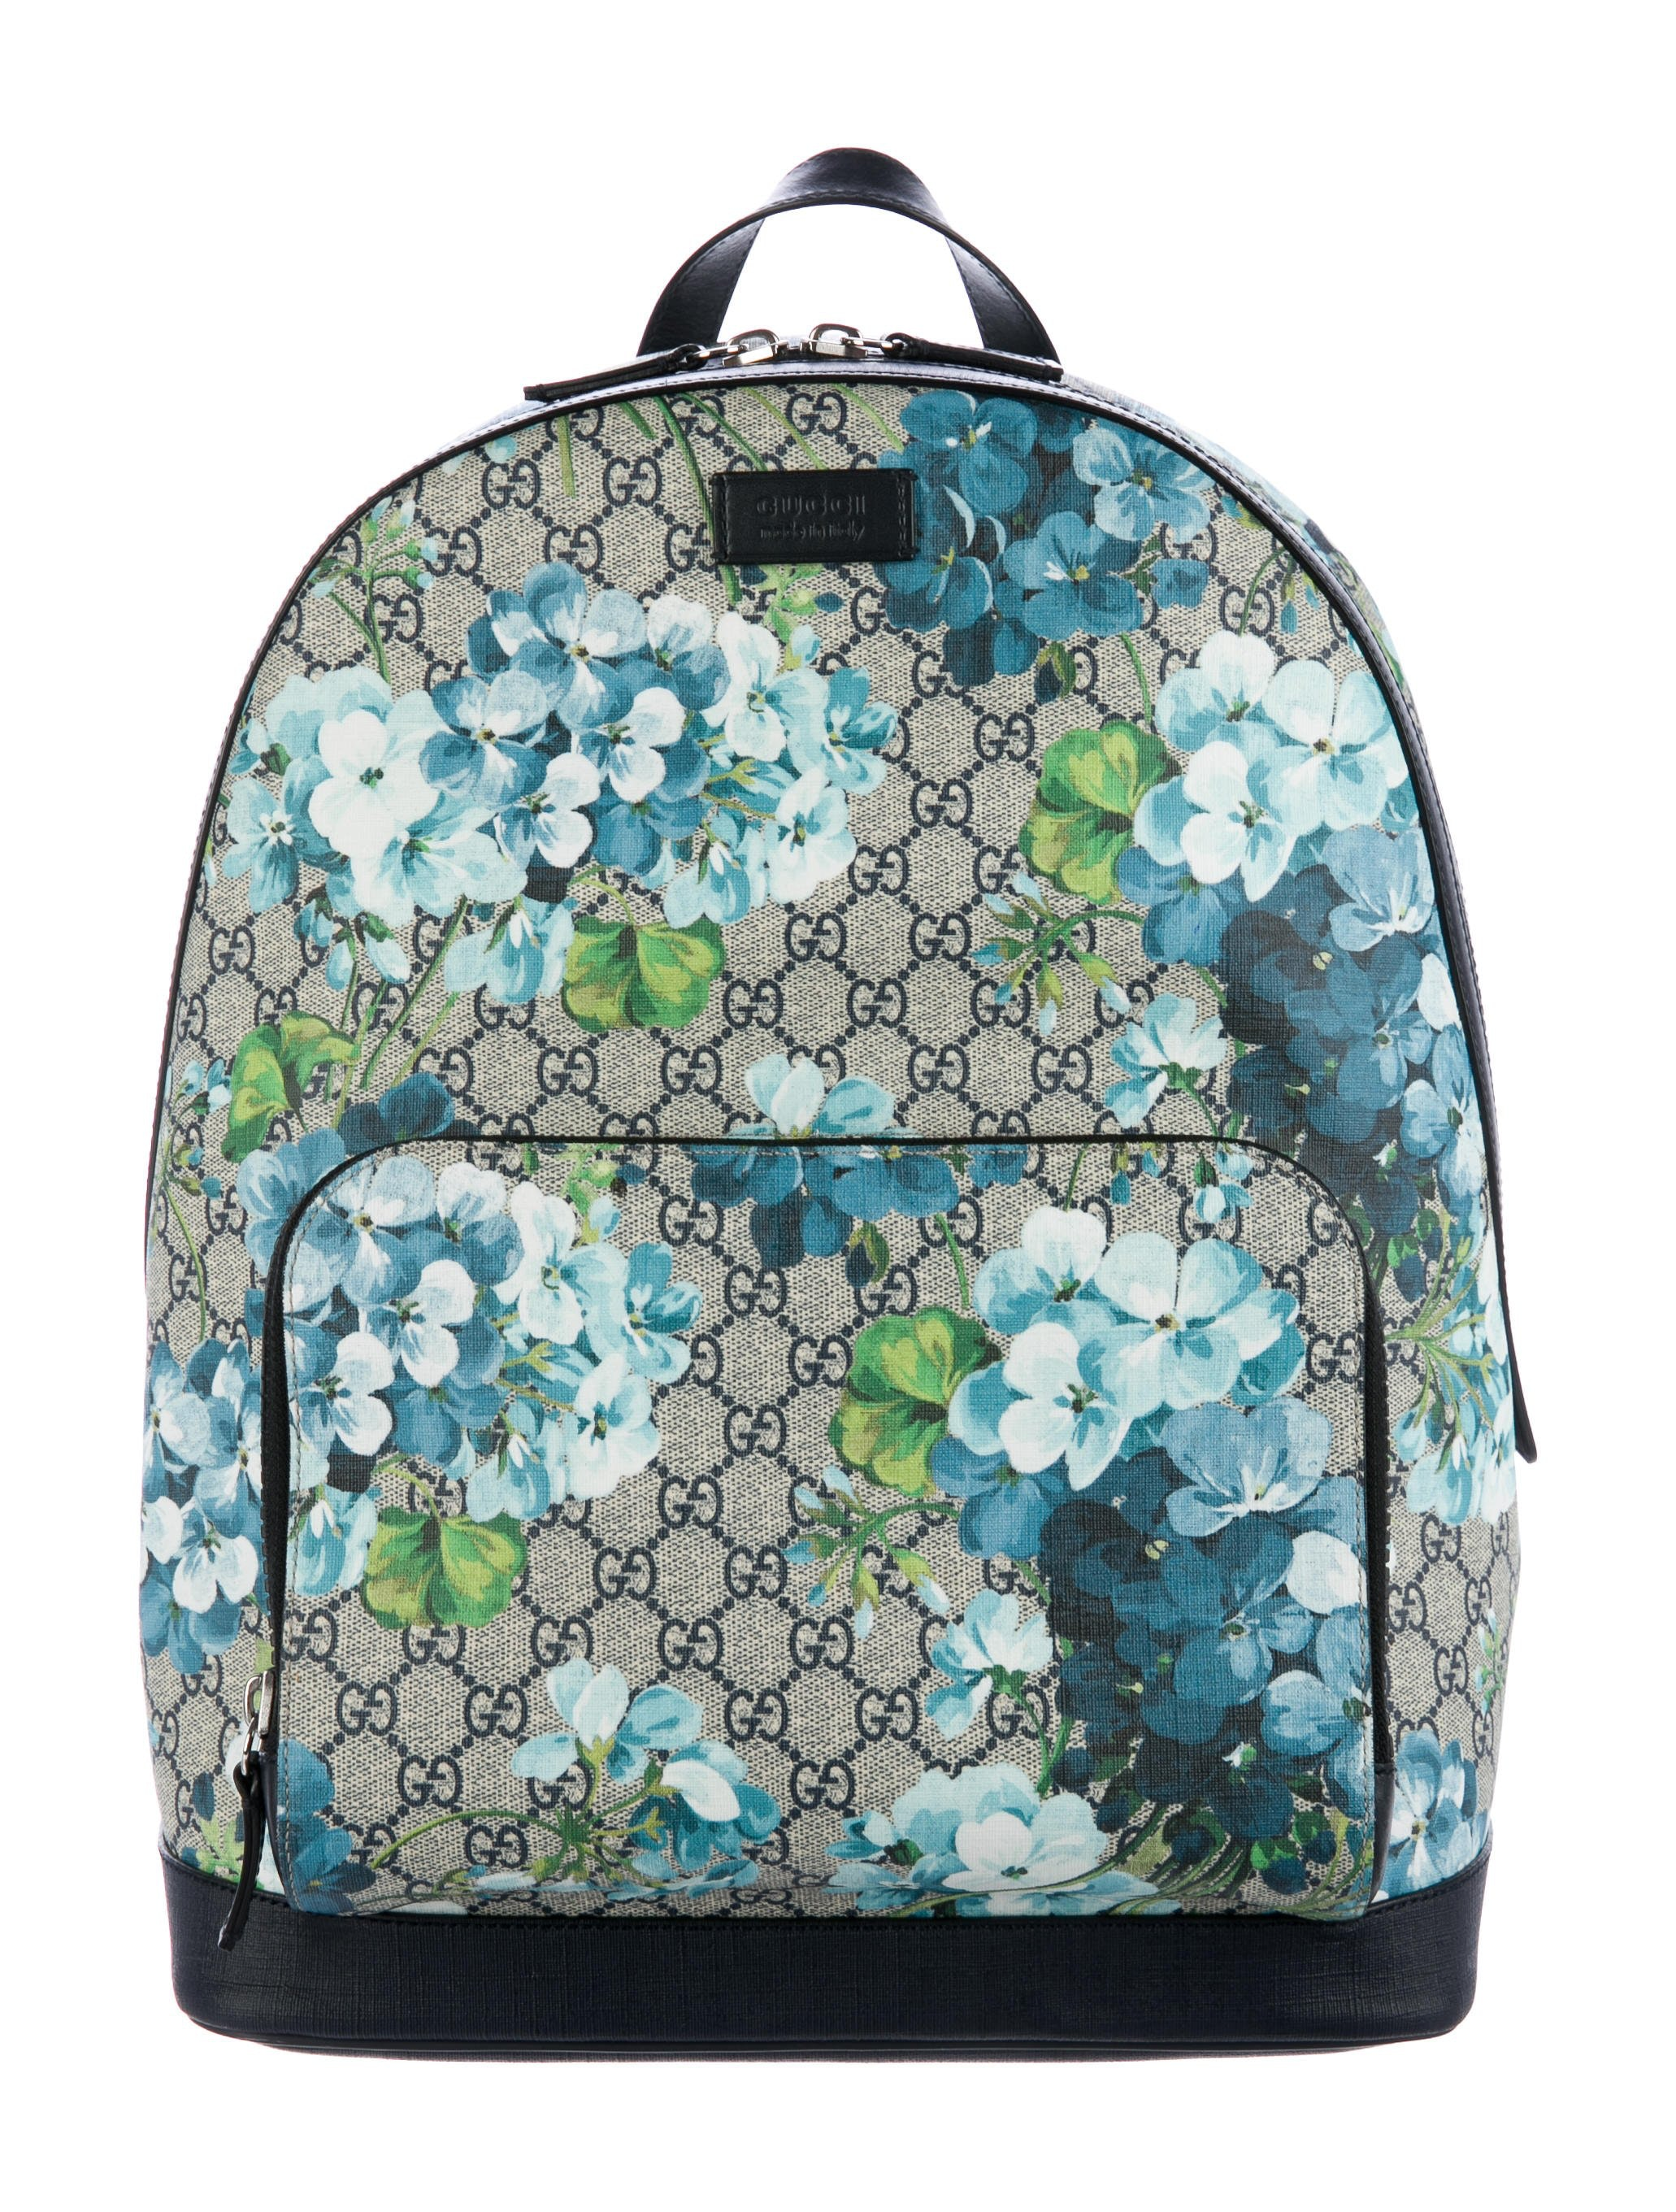 Gucci Blooms Backpack GG Supreme Blue